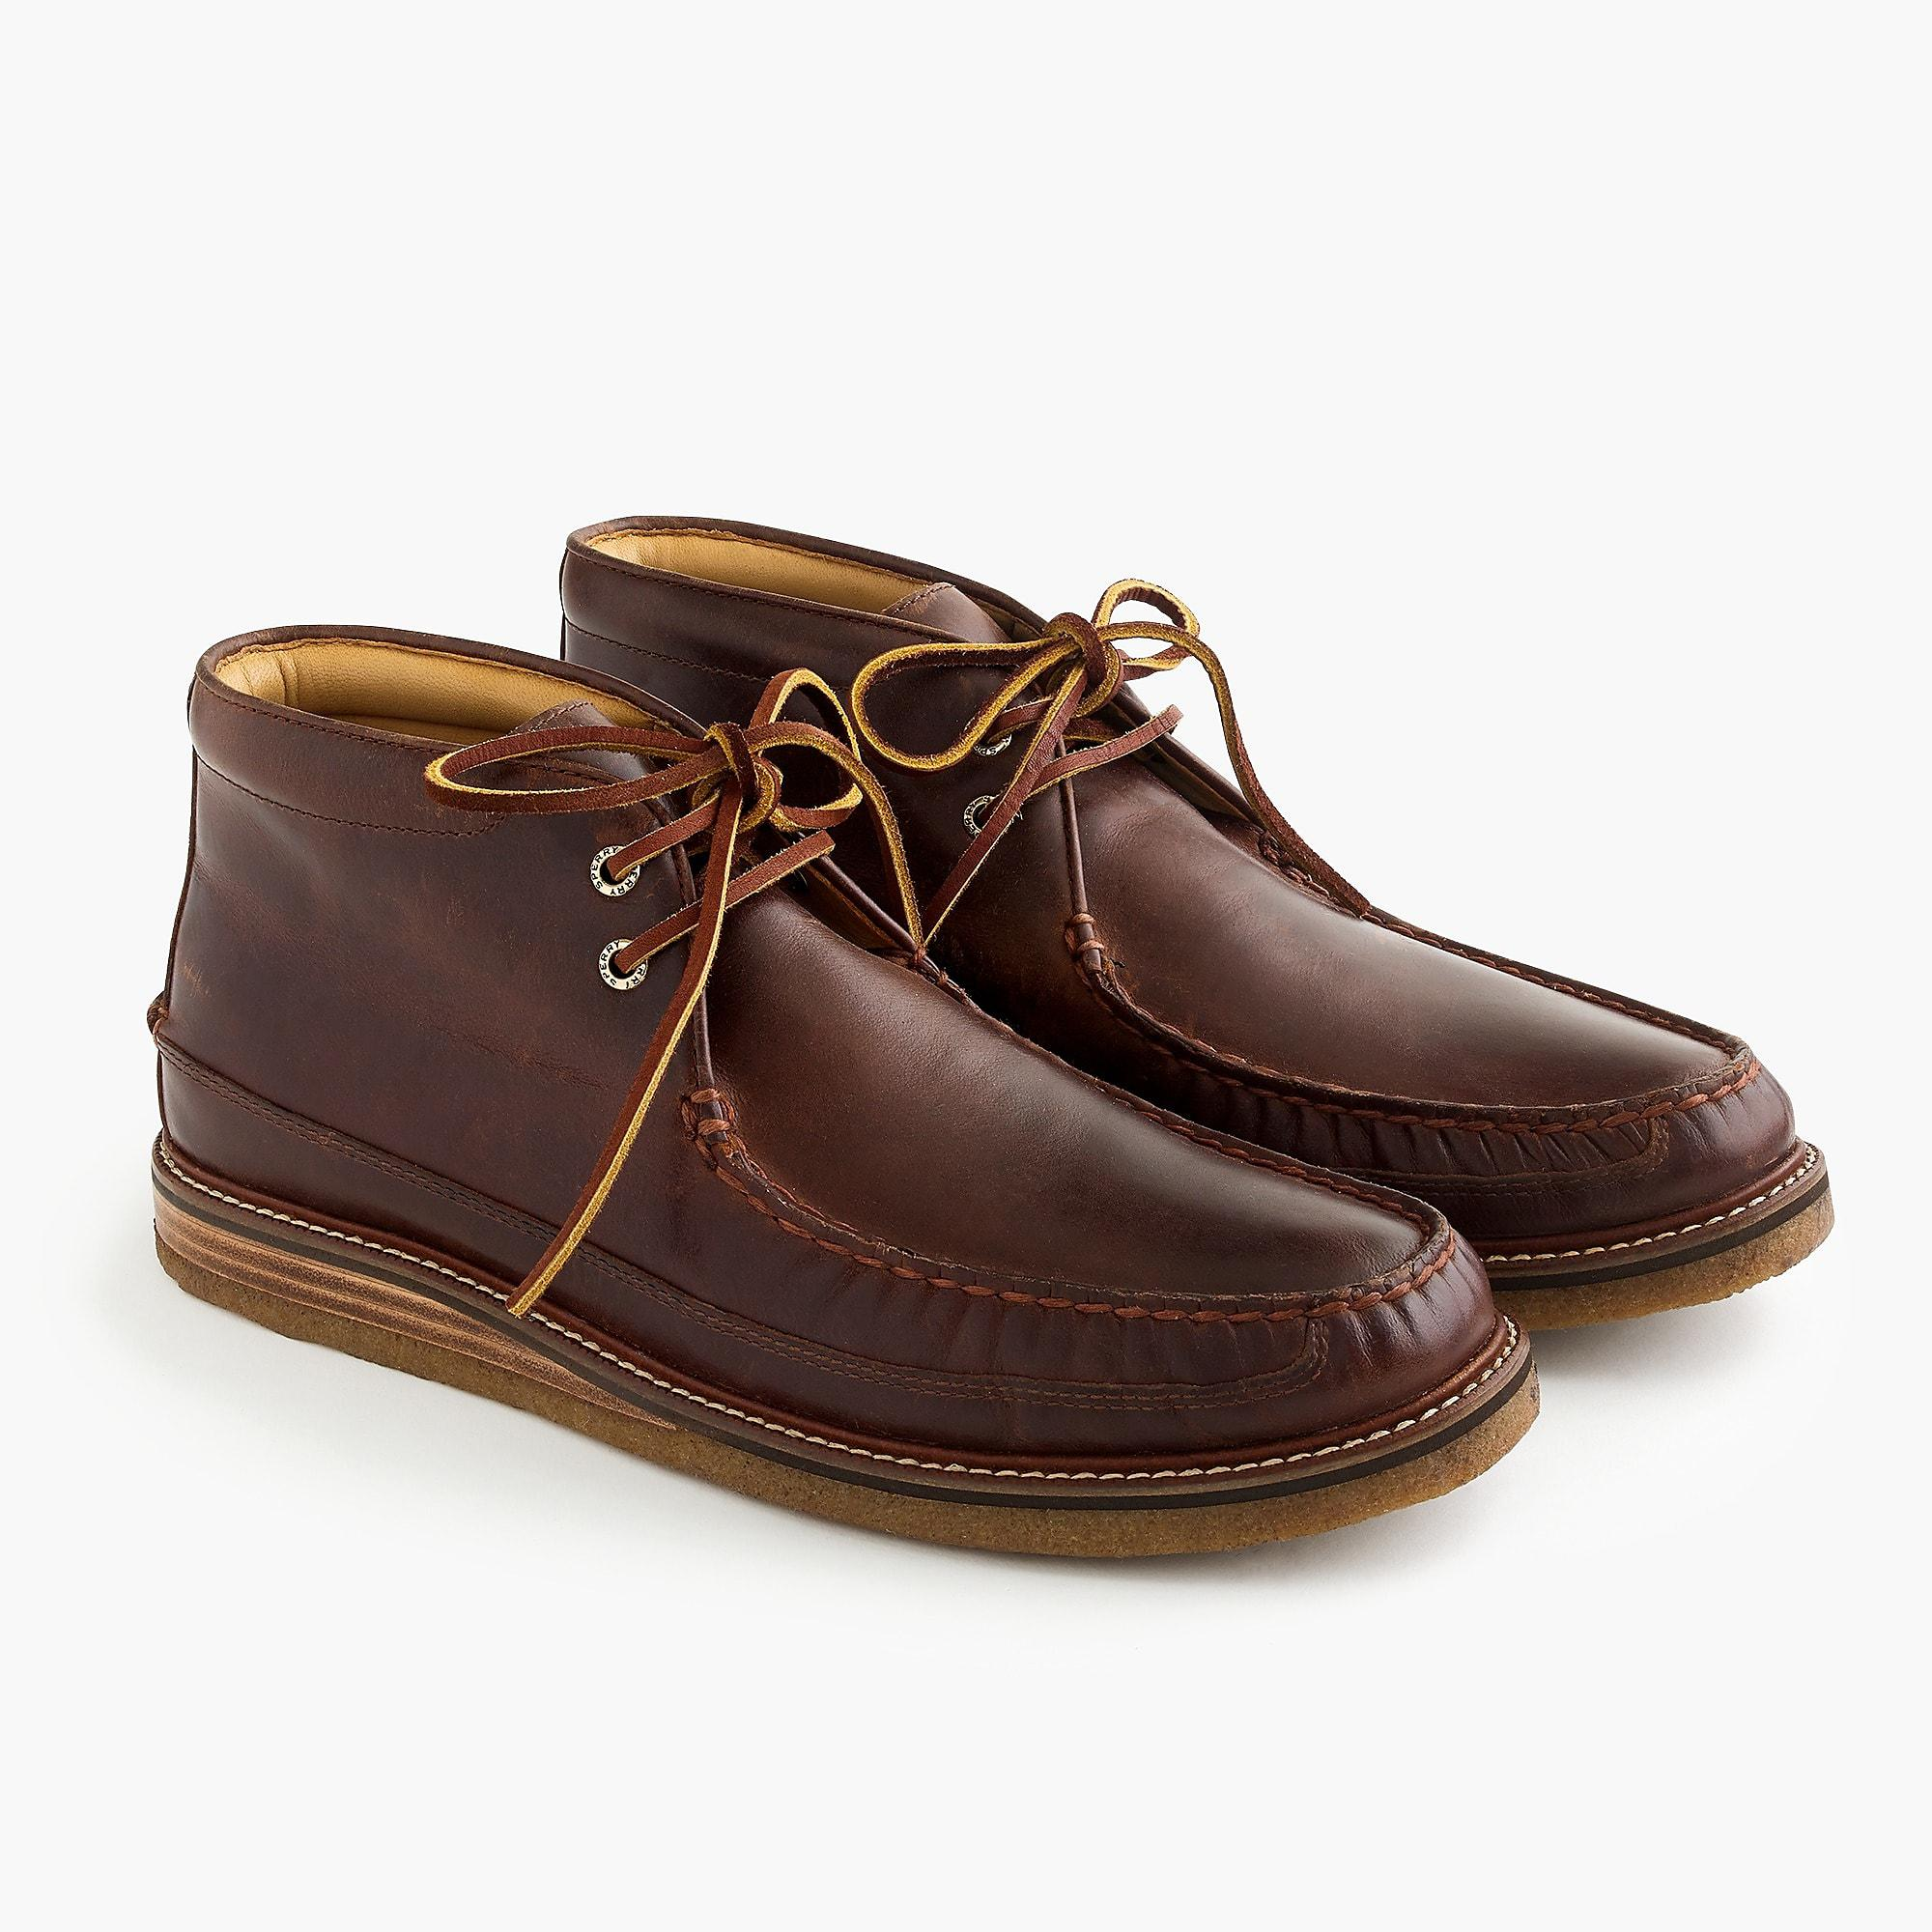 Sperry Top-Sider Gold Cup Crepe Soled